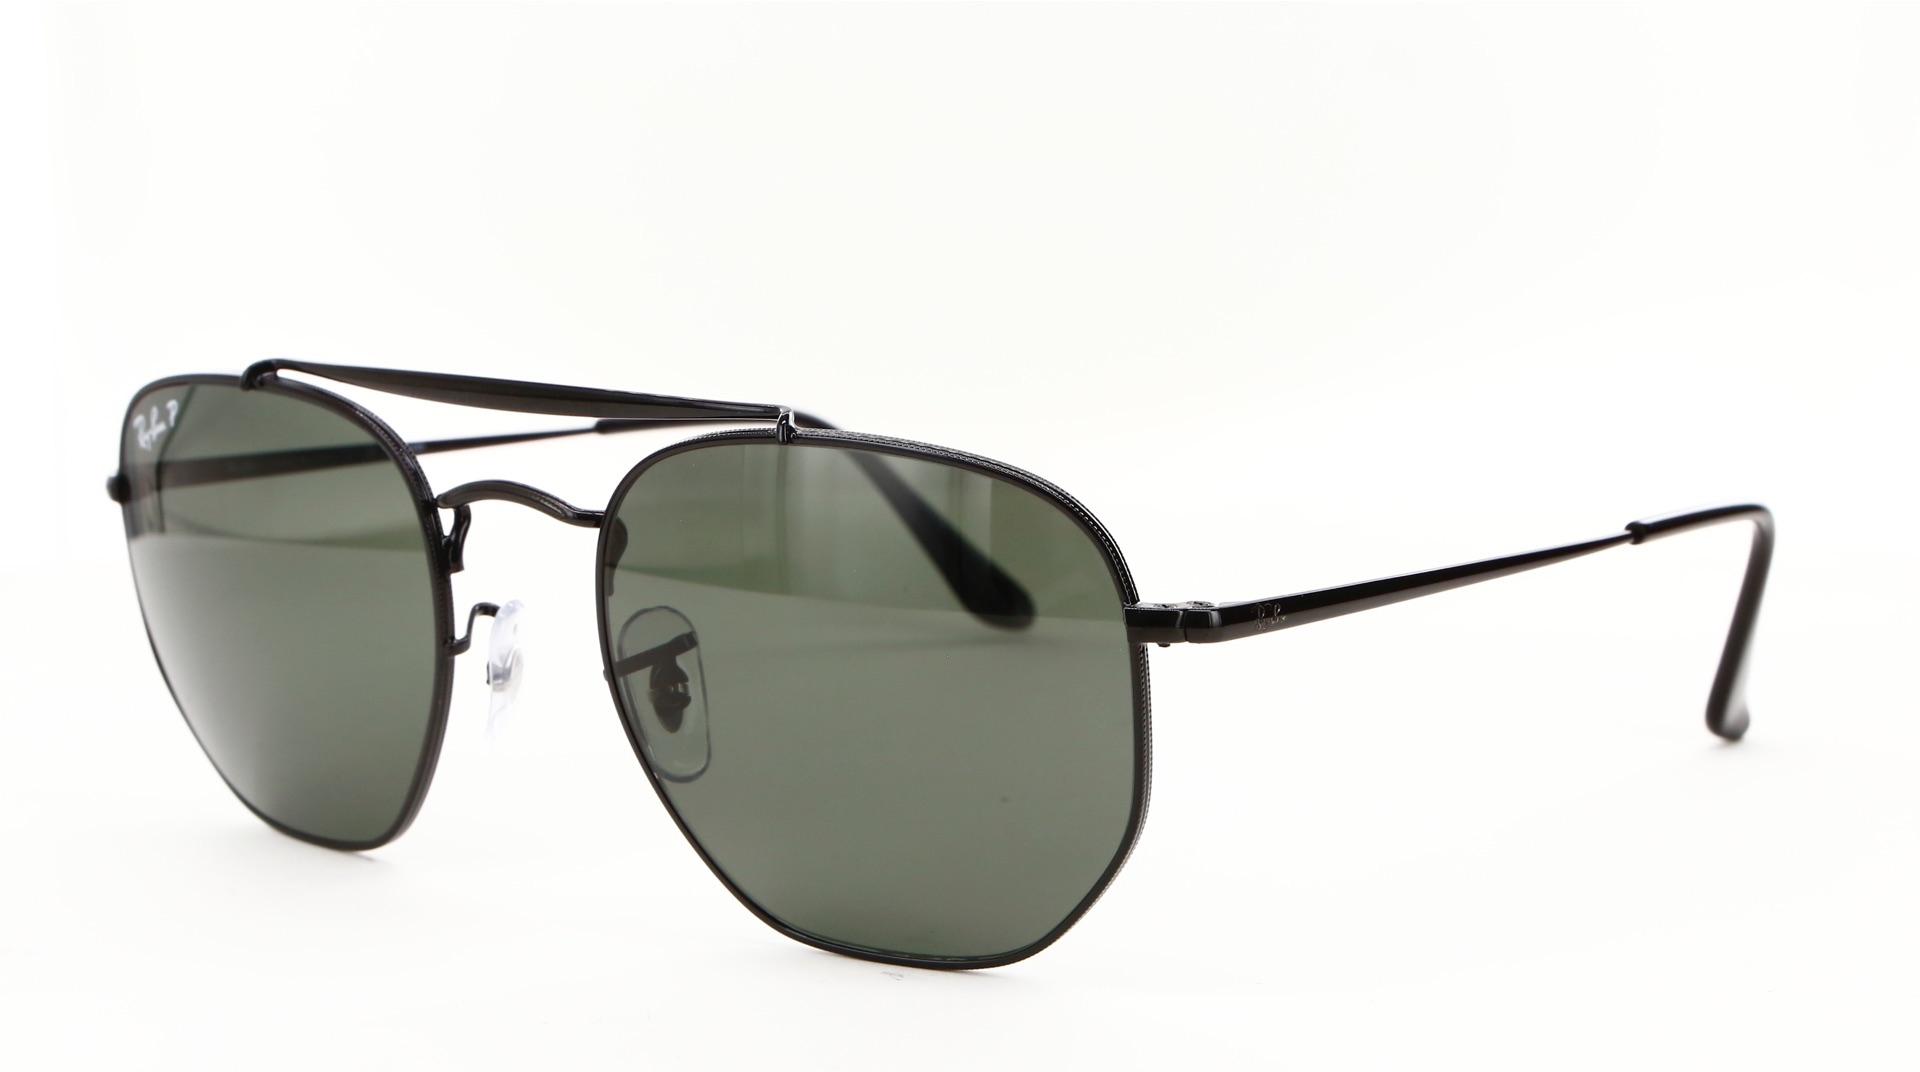 Ray-Ban - ref: 79127